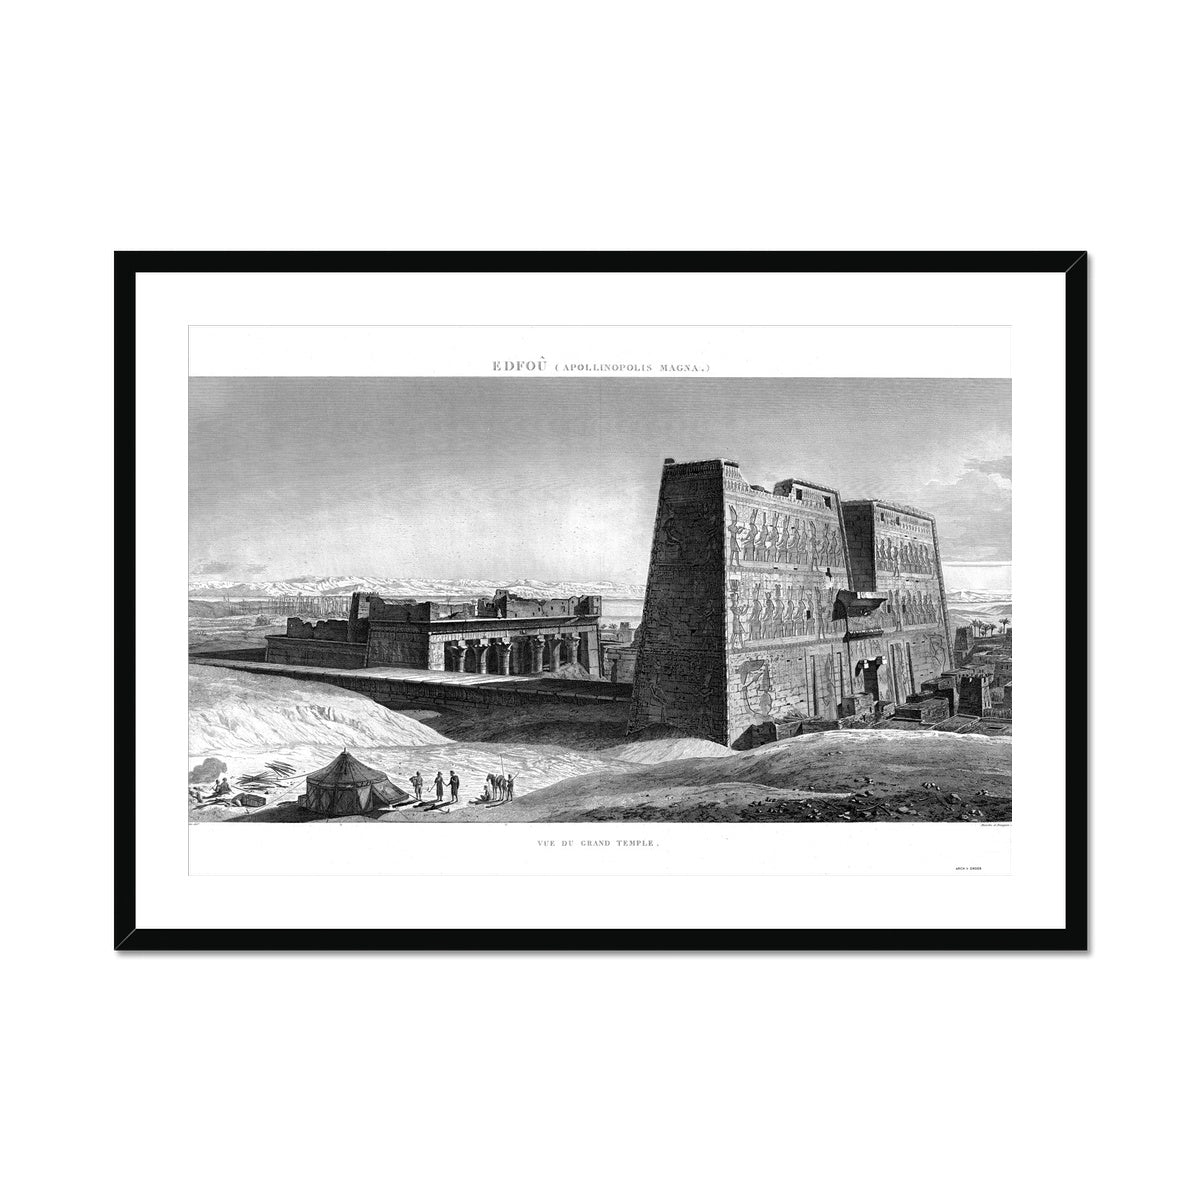 Temple of Horus Perspective 2 - Edfu Egypt -  Framed & Mounted Print